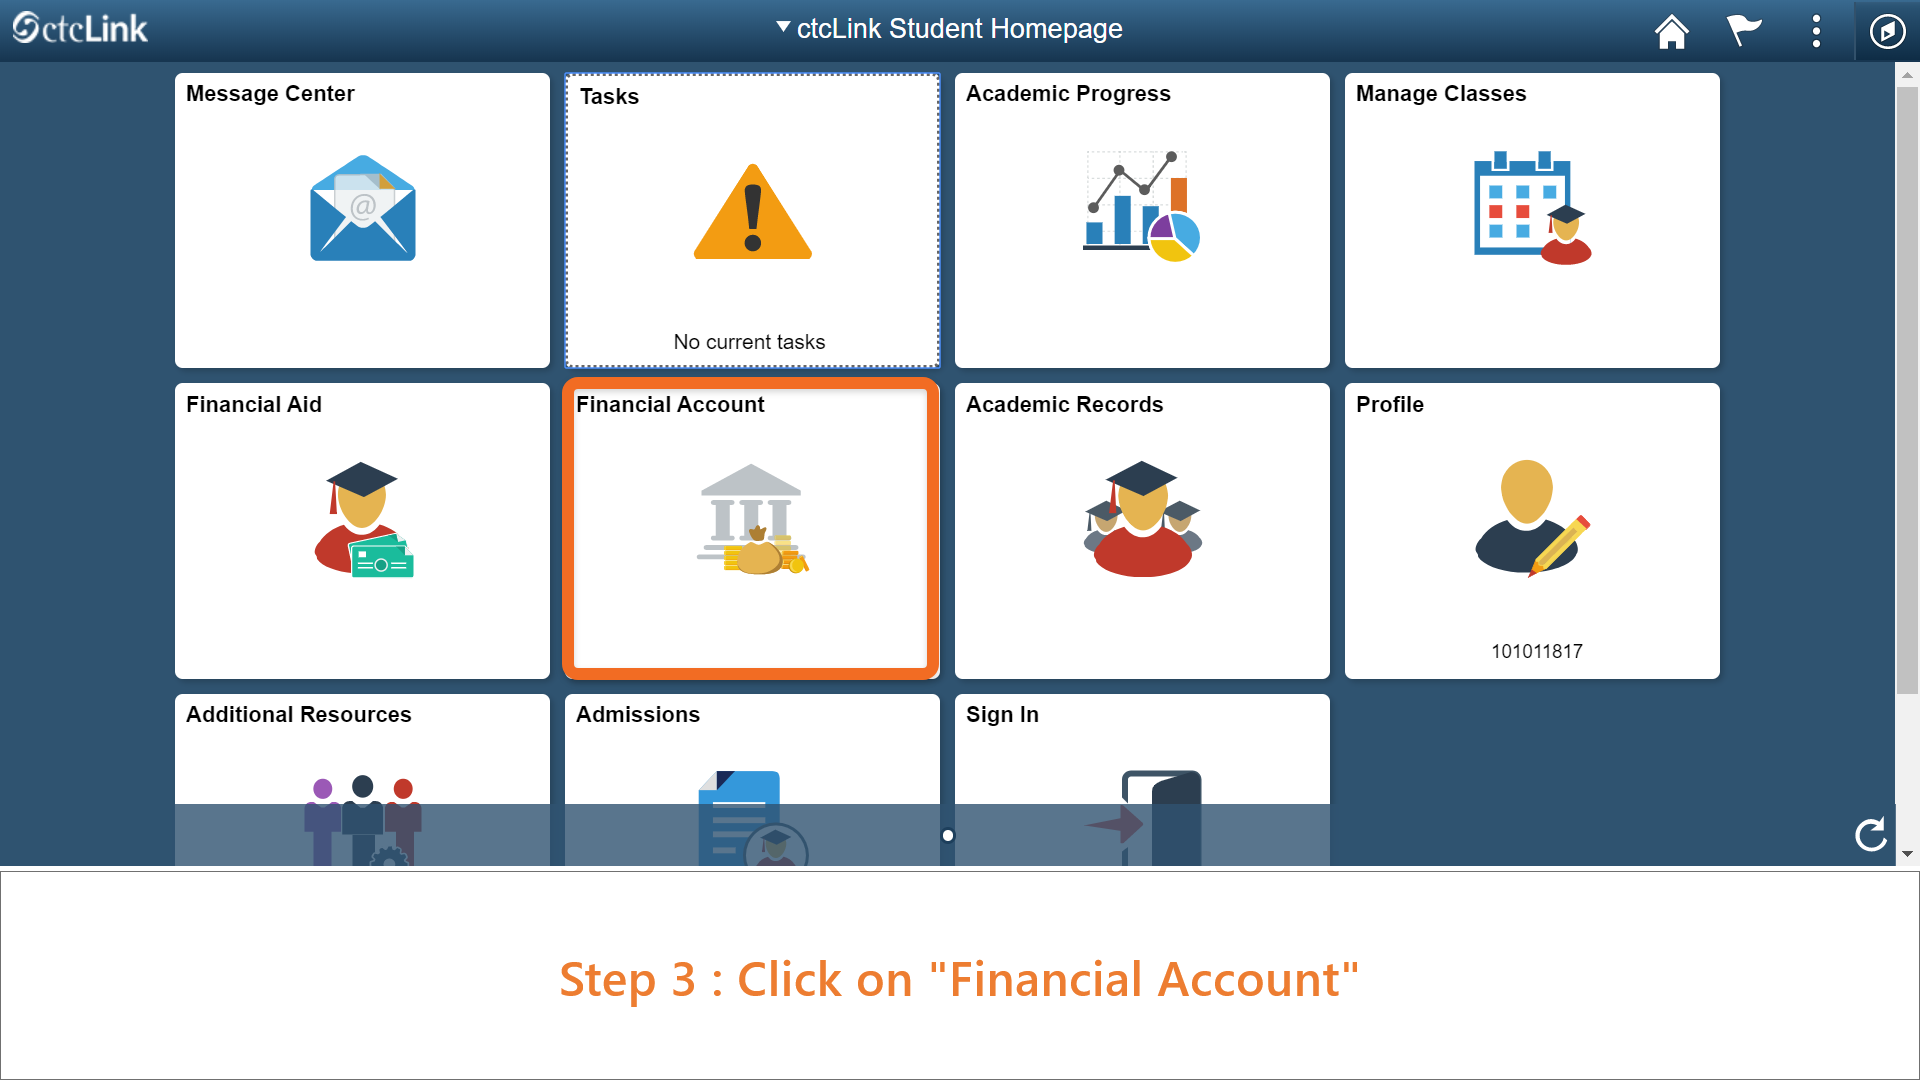 Step 3: Click on 'Financial Account'.